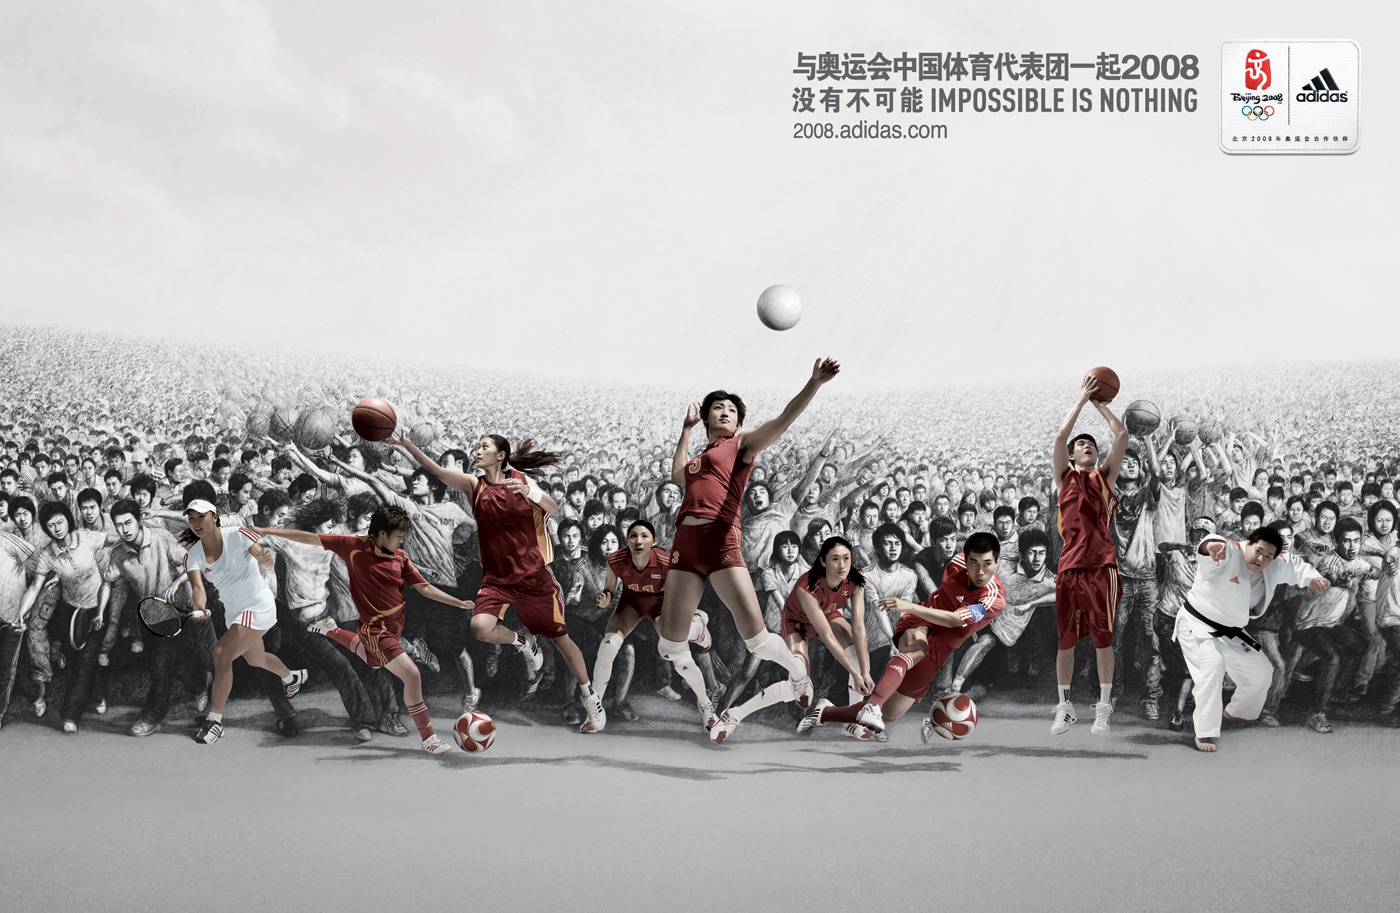 Easily One of the Best Olympic Ad Campaign: Adidas